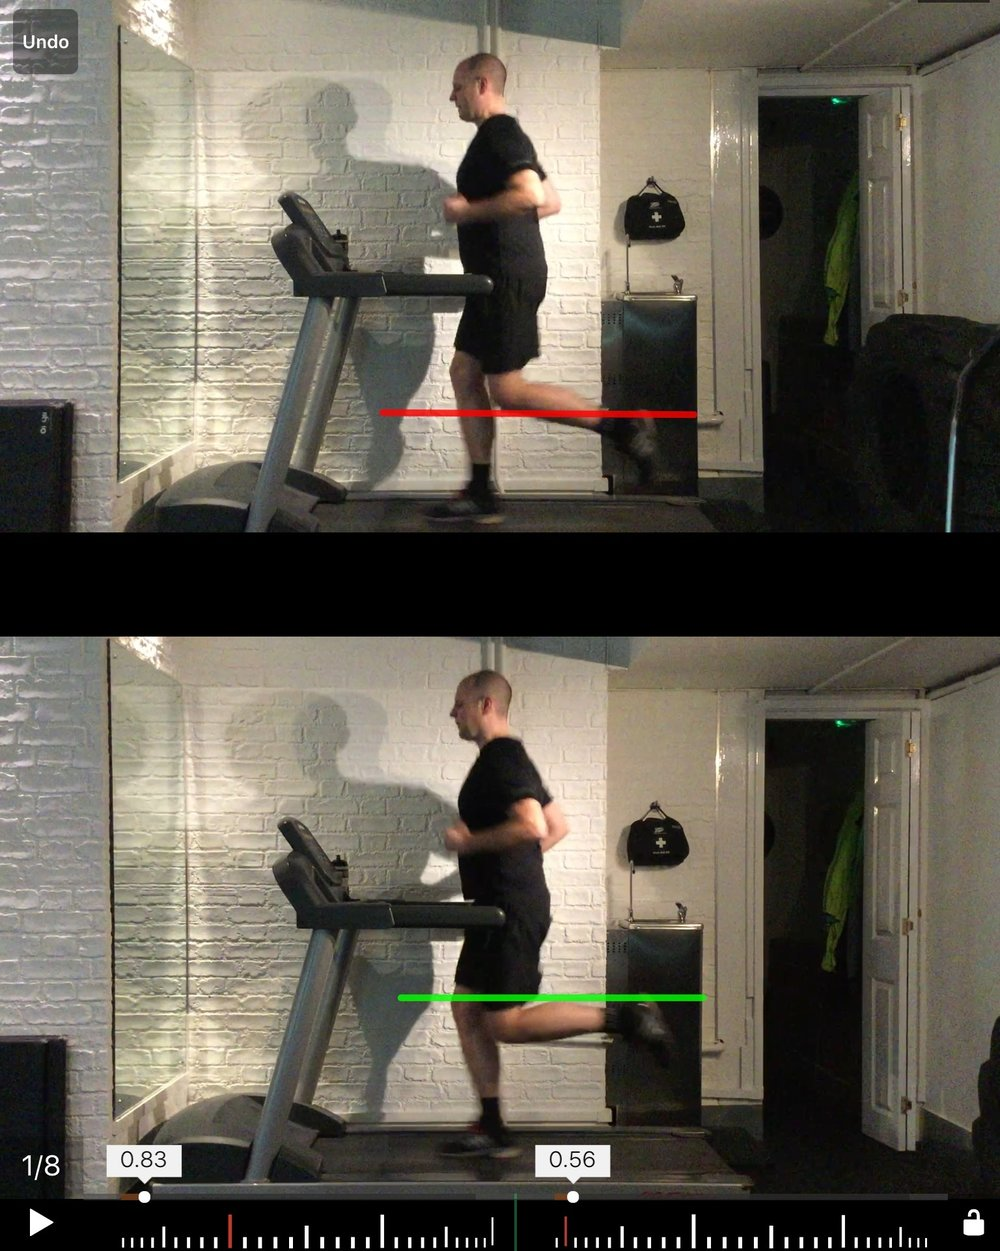 Example of improved heel lift and increased hamstring activation